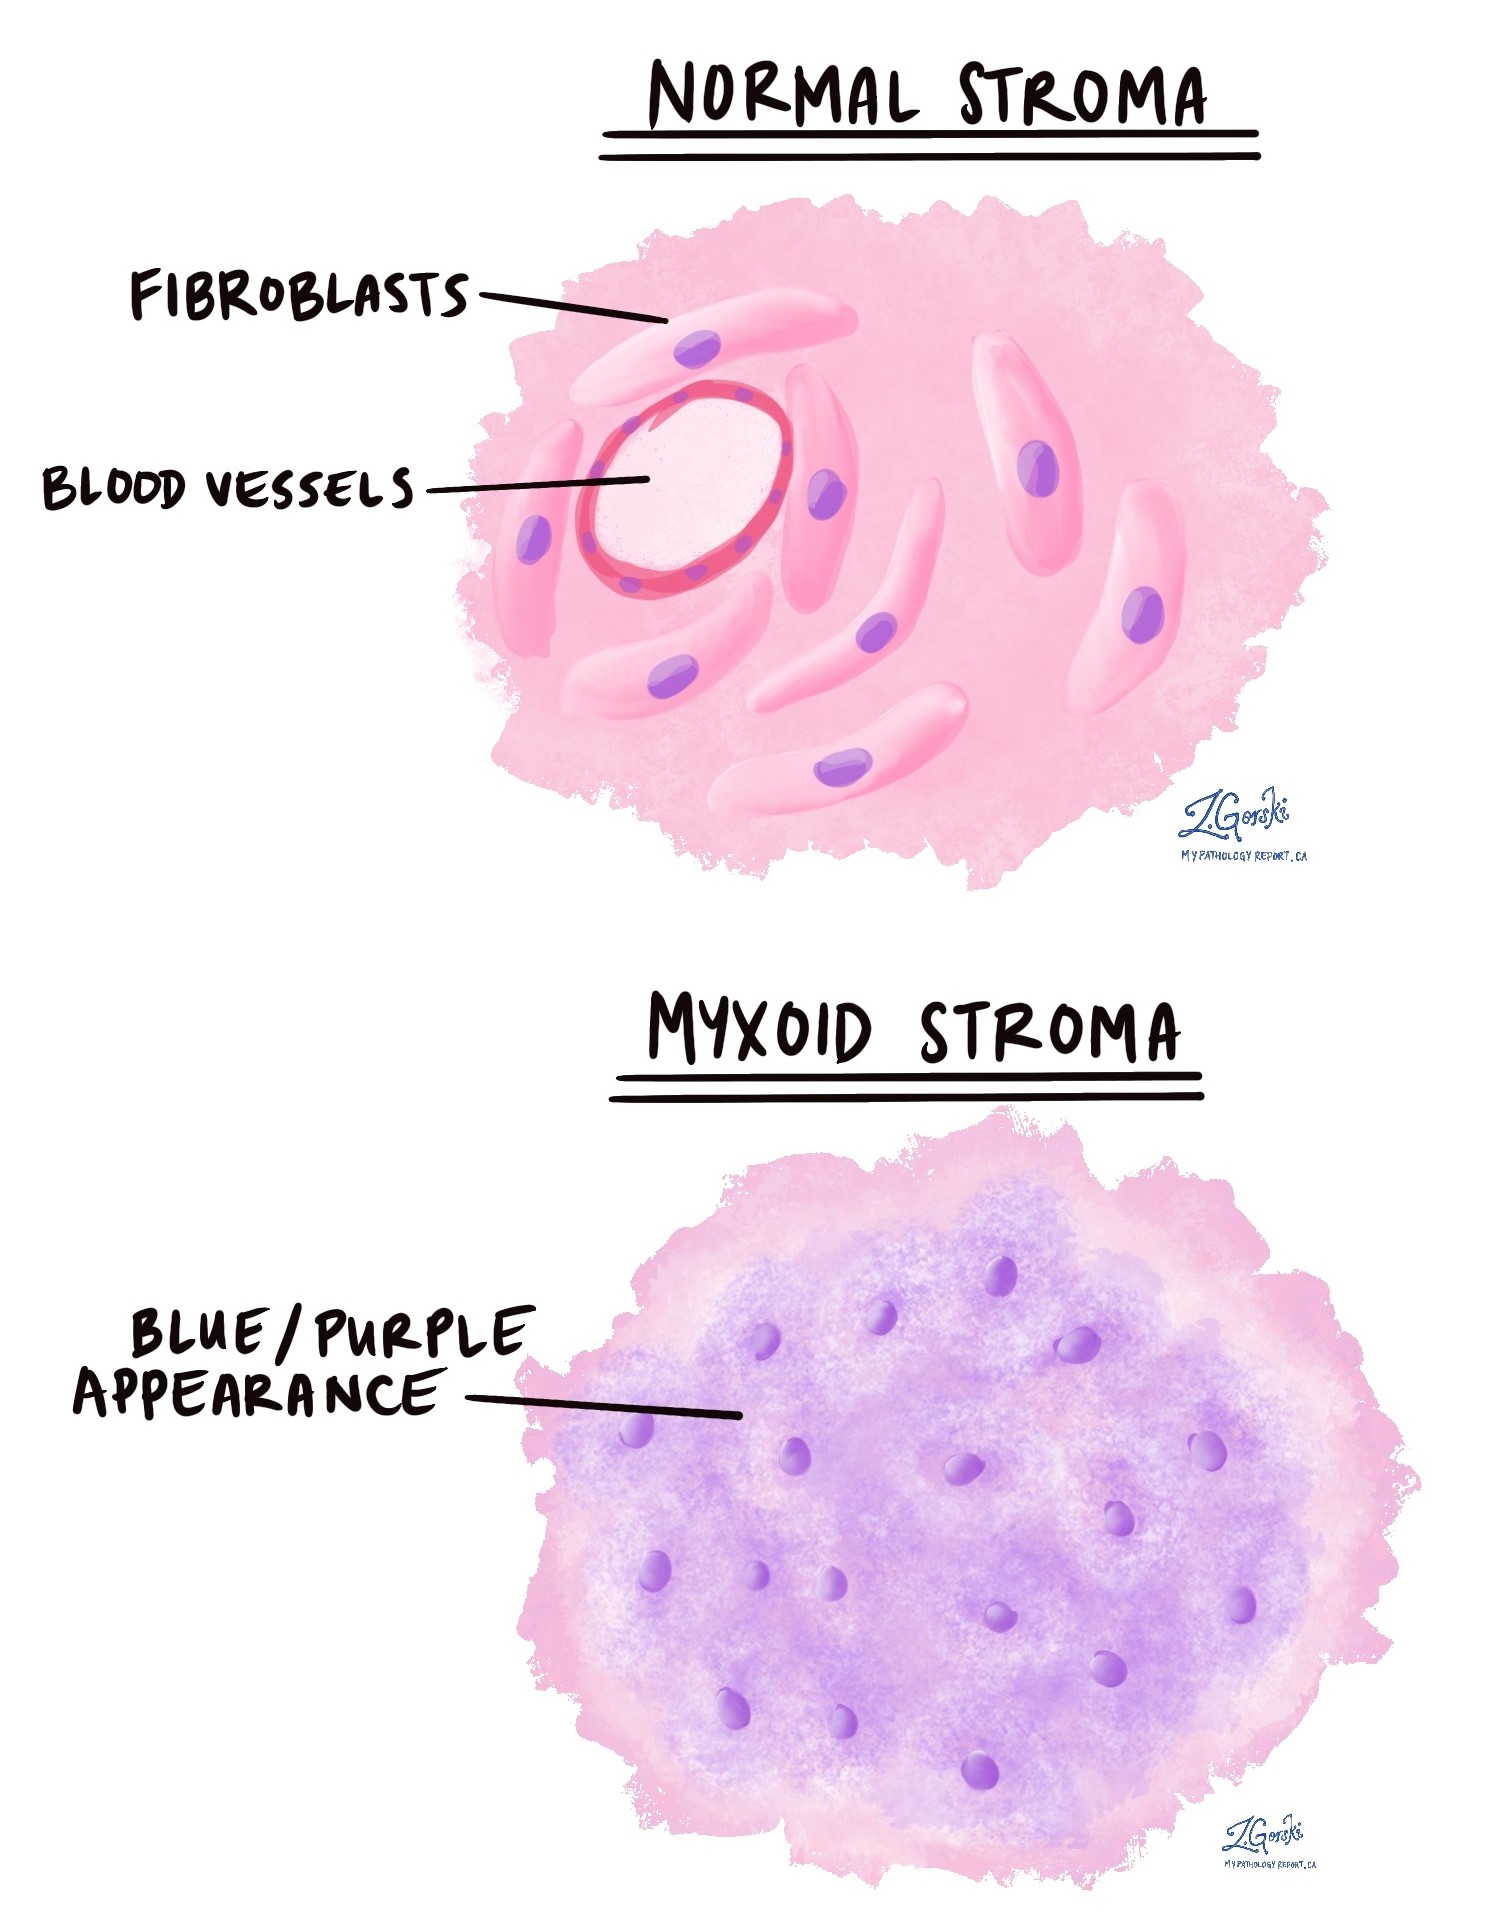 myxoid and normal stroma